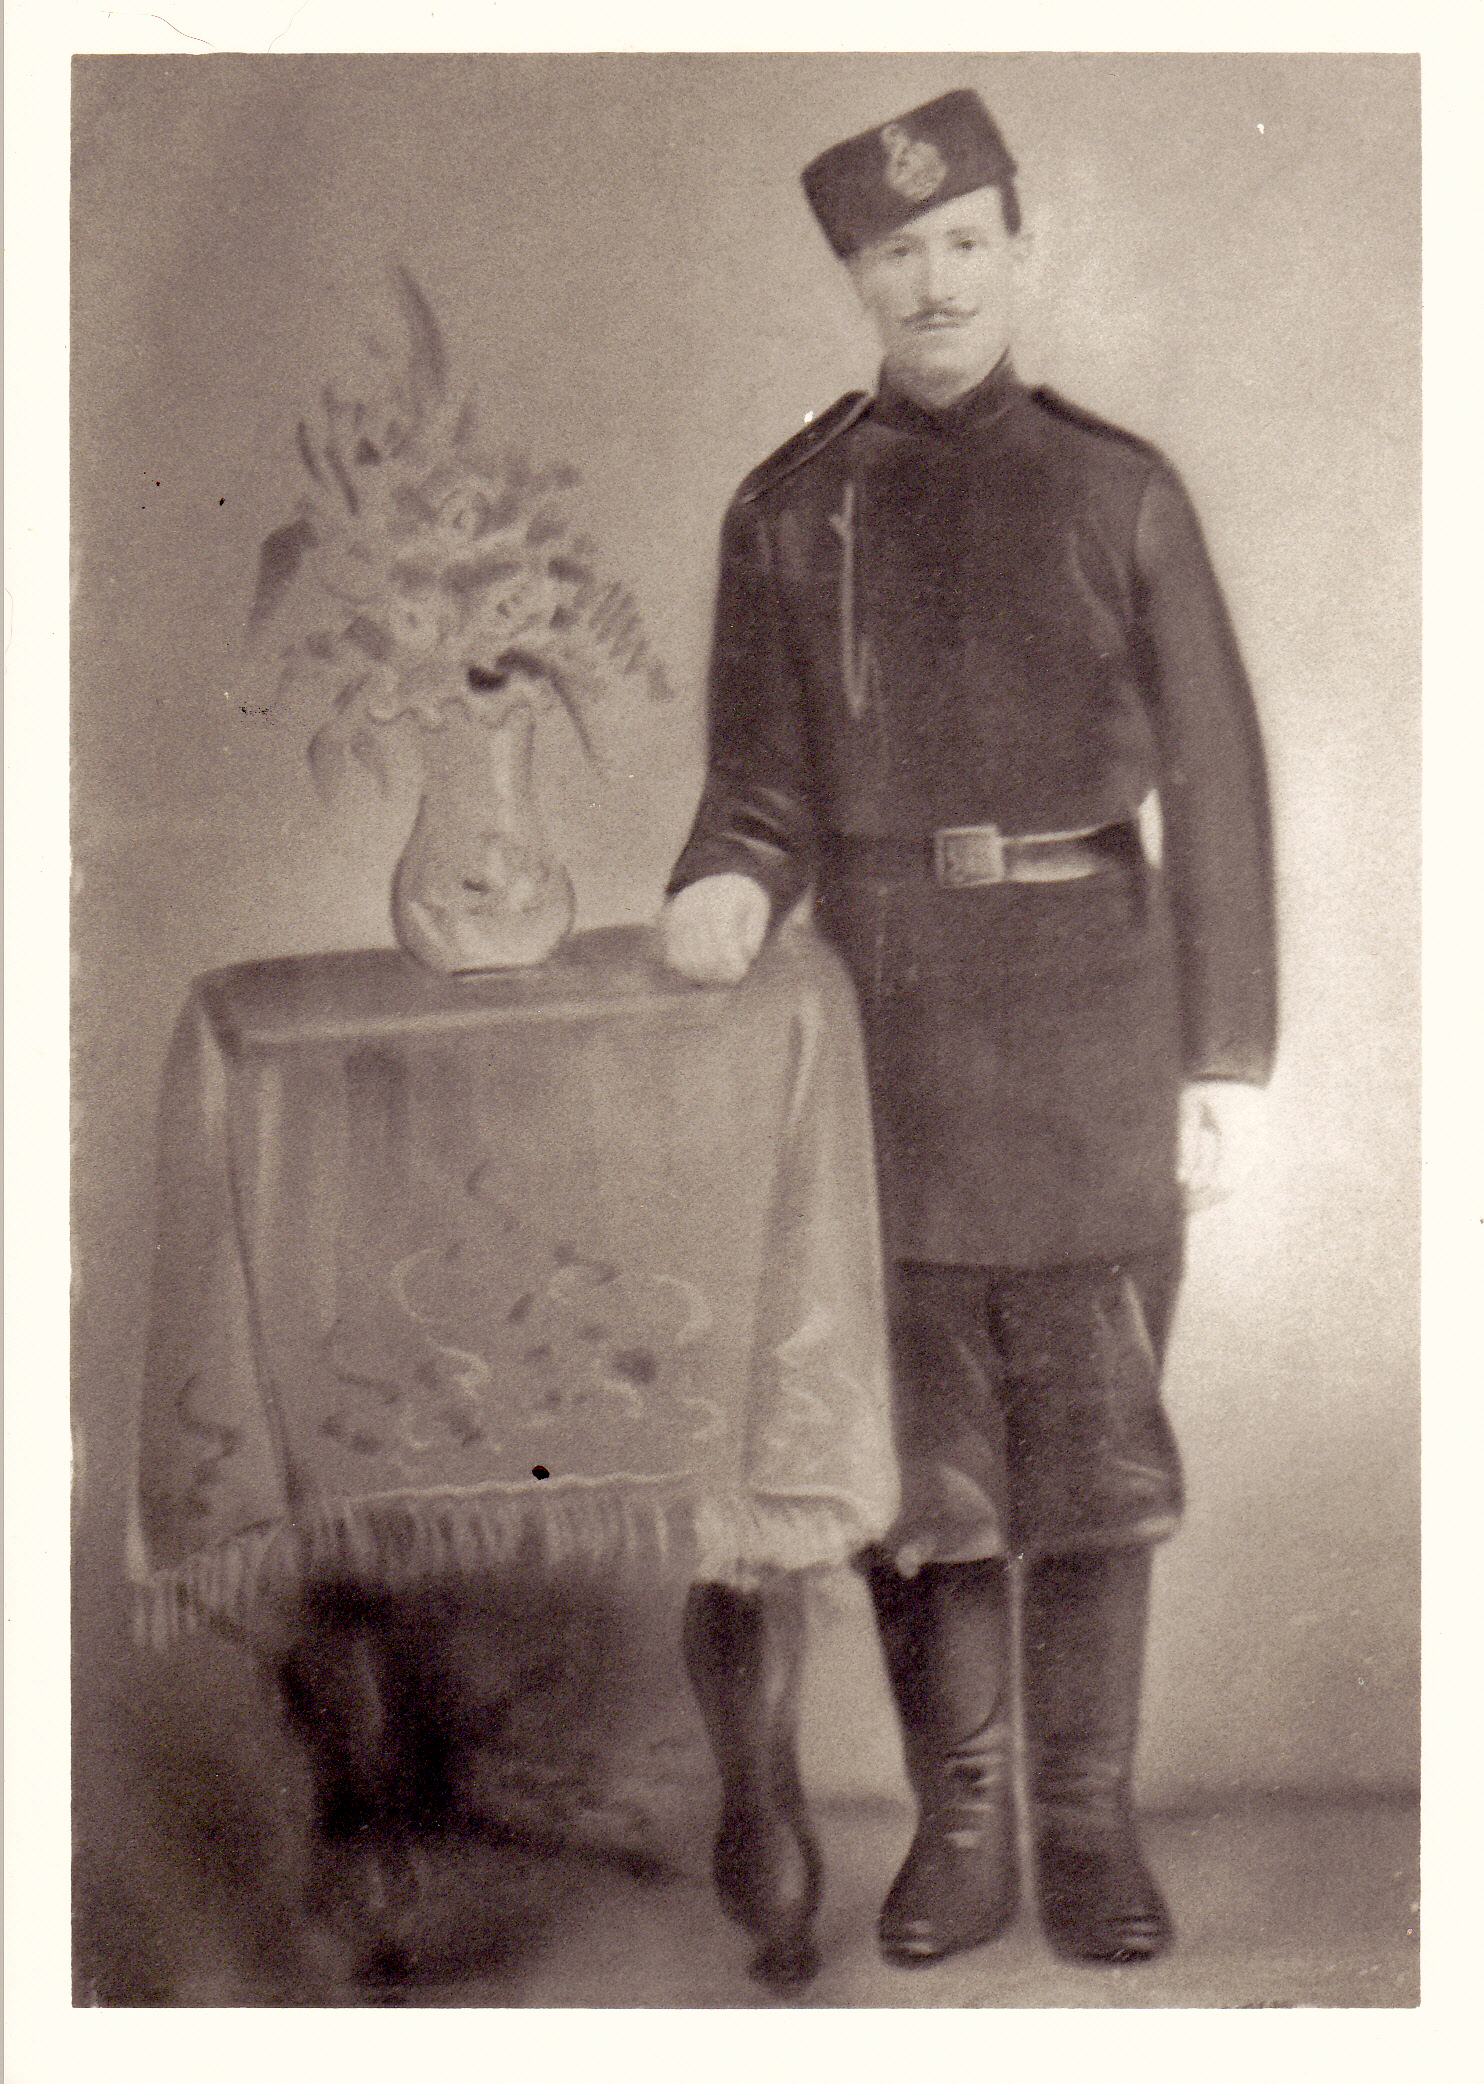 Photograph of Georg Dahmer in military uniform. Georg was born in Beideck. Photograph courtesy of Michelle Reynolds.